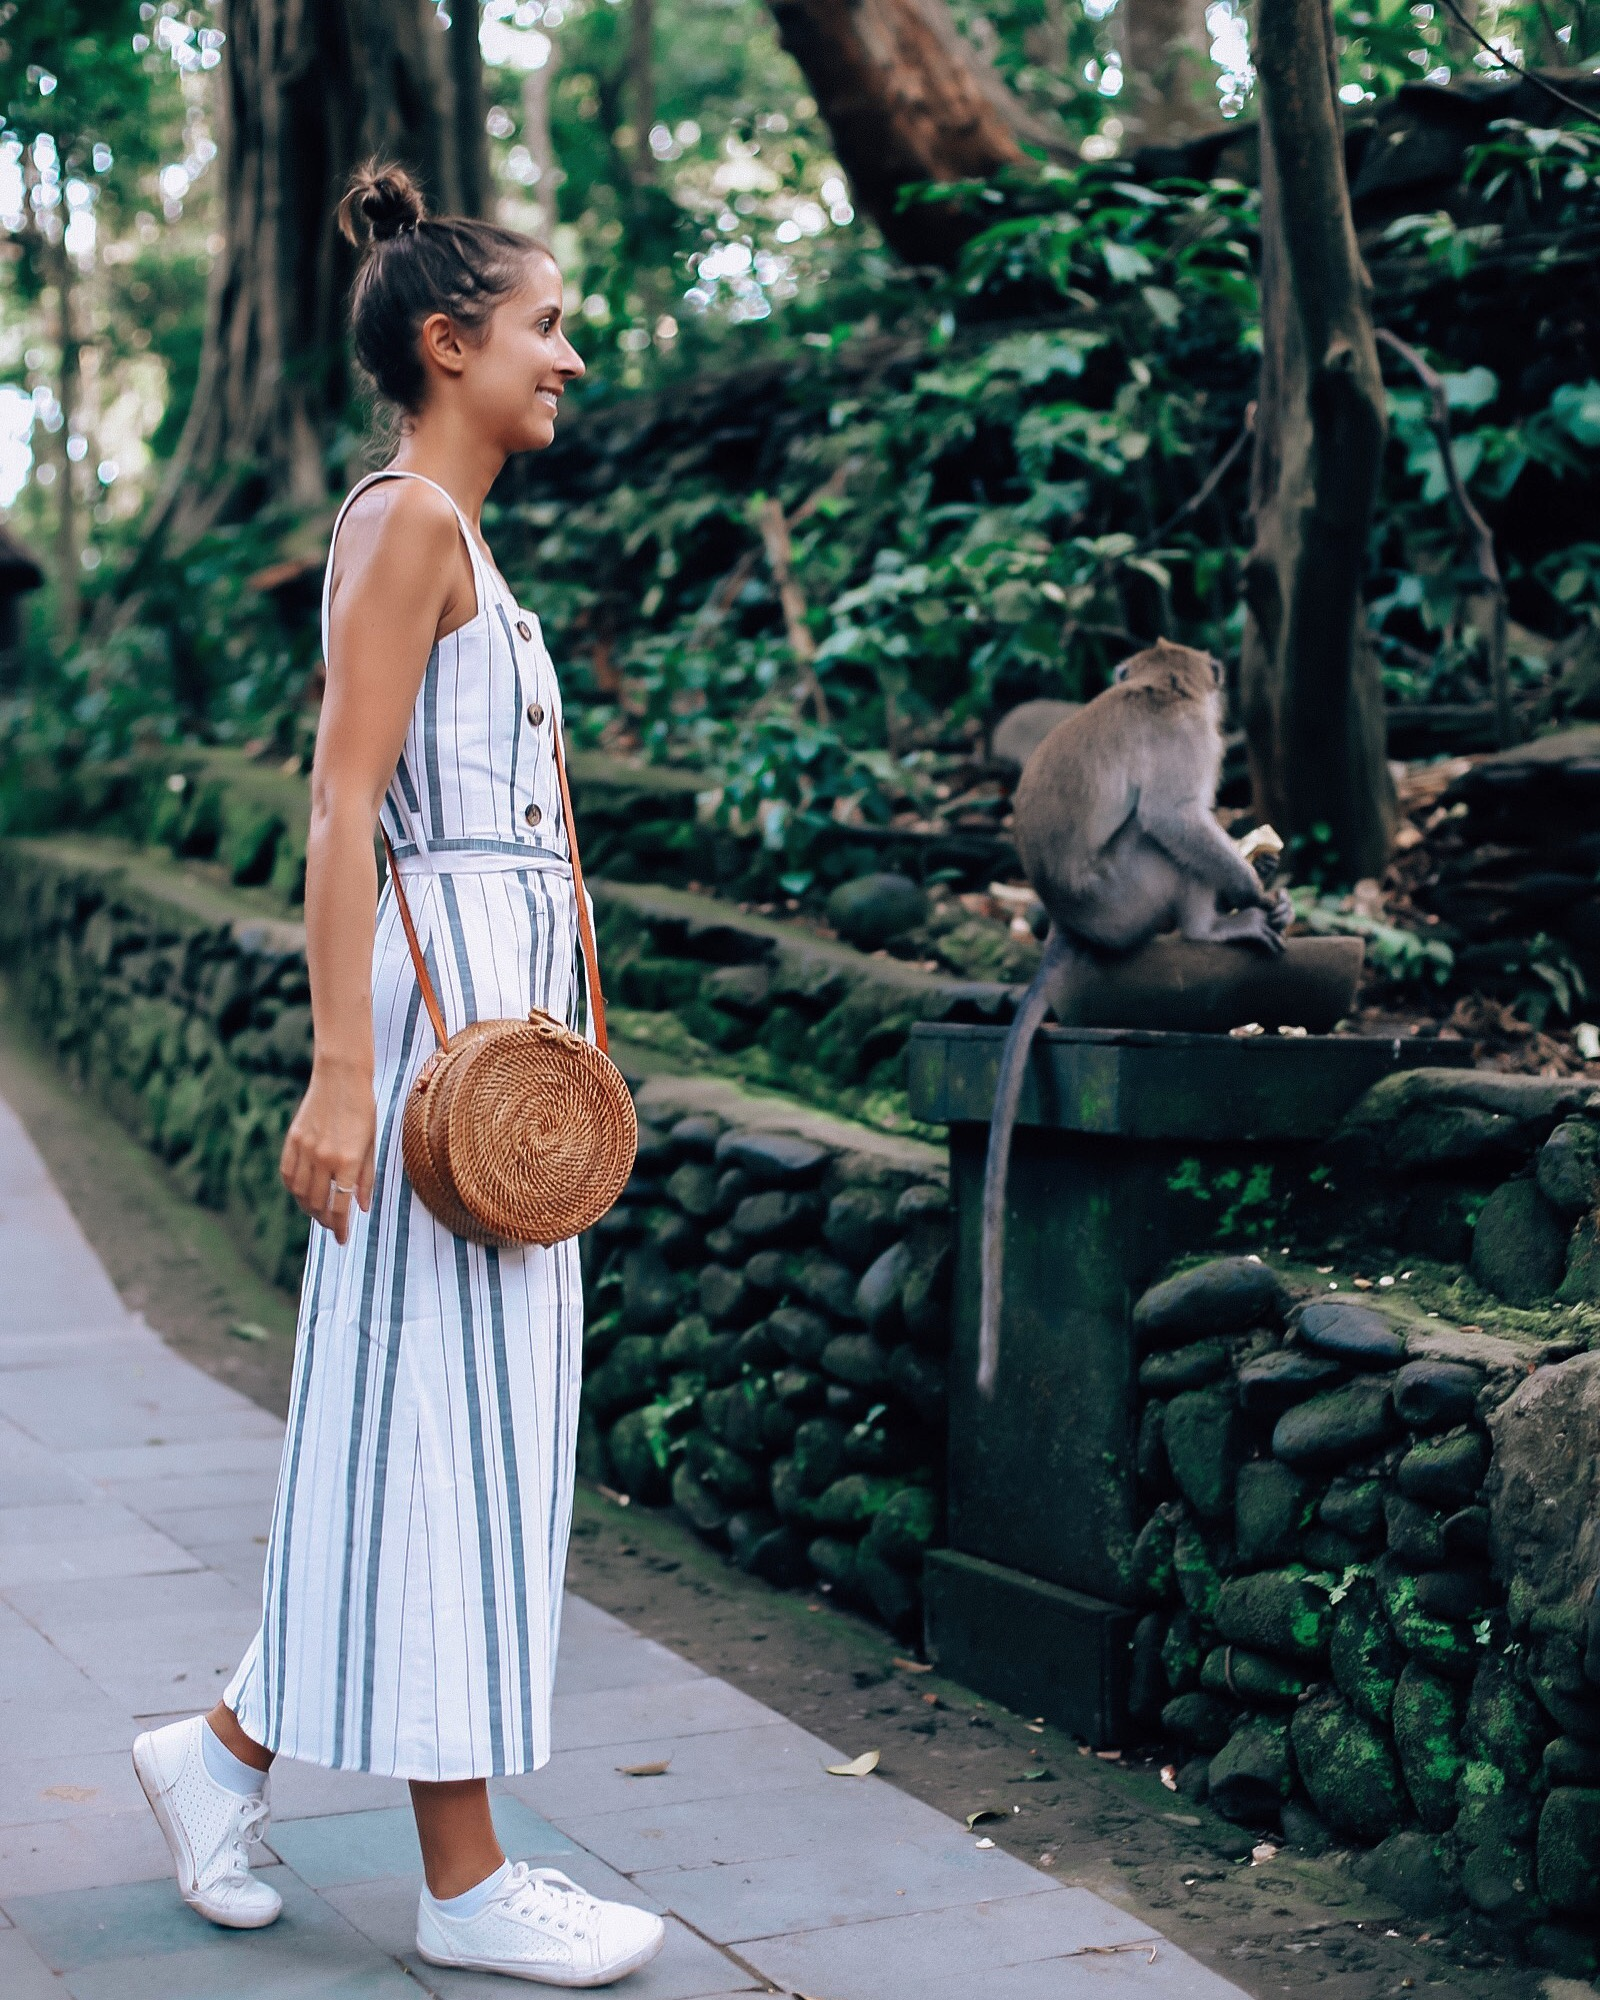 eat life with style, ubud, bali, Sacred Monkey Sanctuary